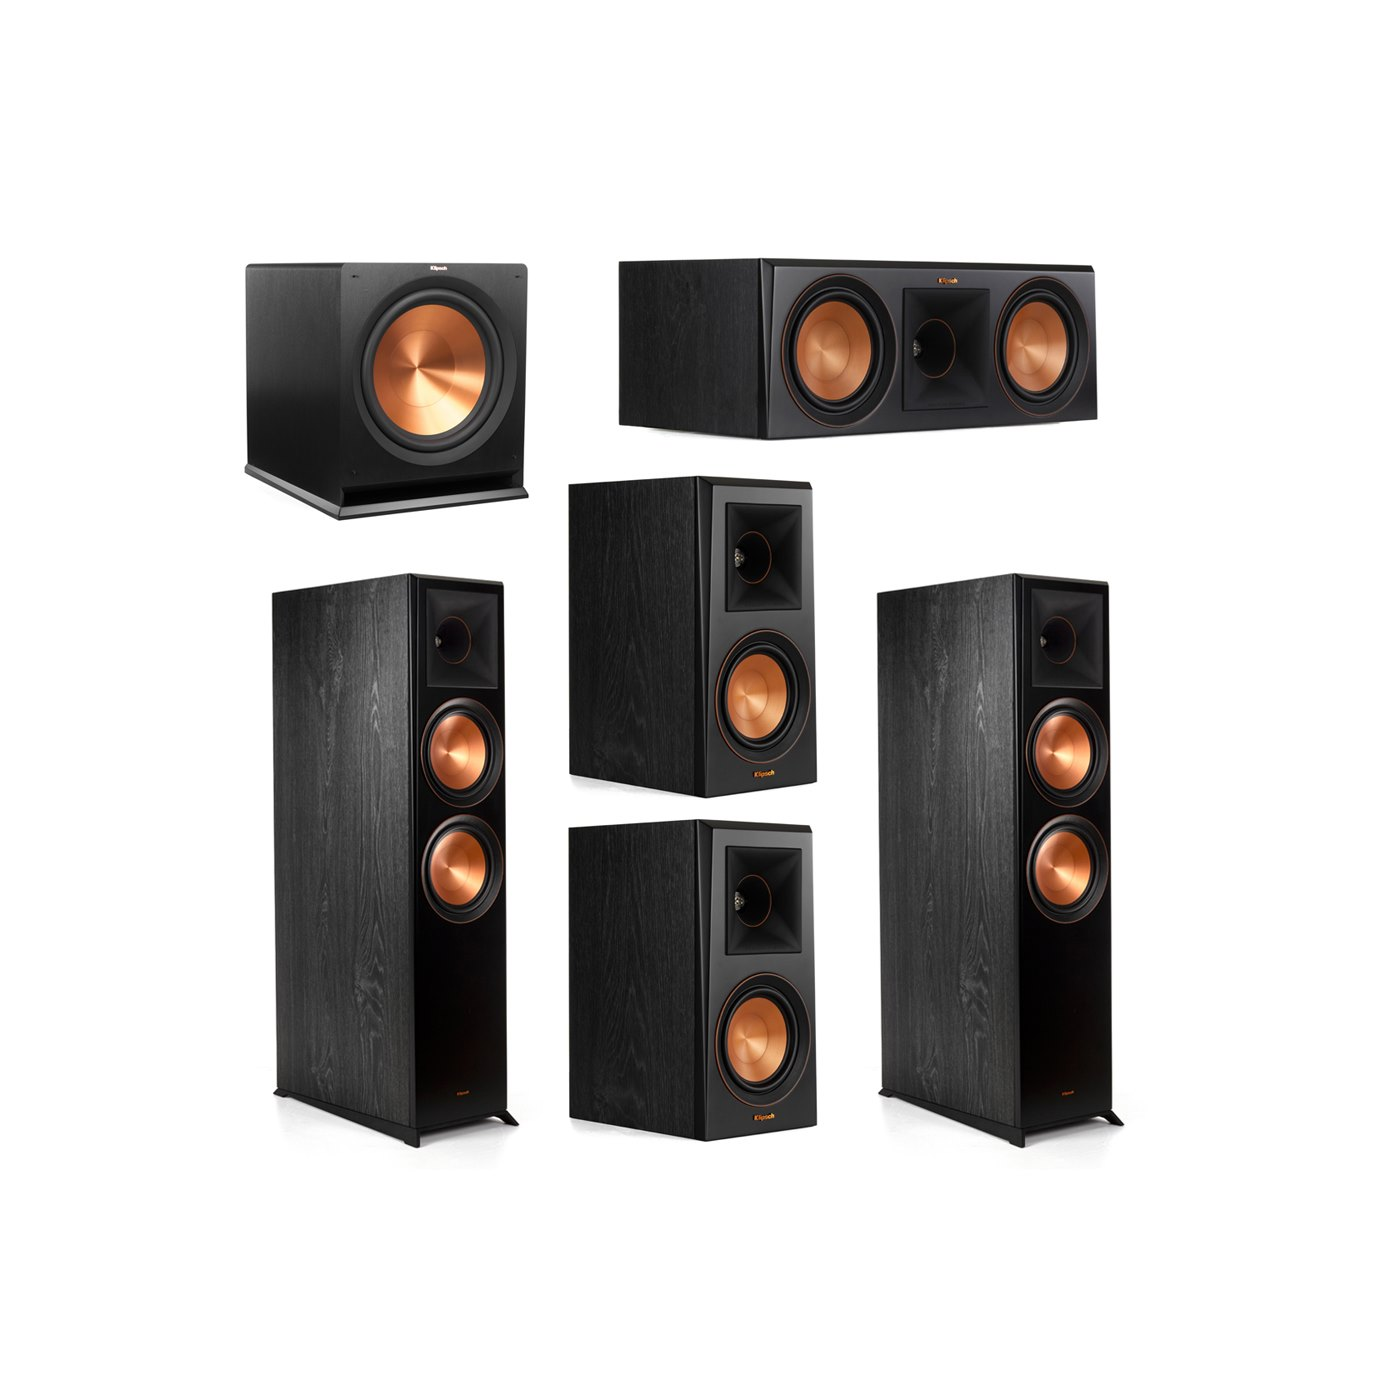 Klipsch 5.1.2 System - 2 RP-8060FA Dolby Atmos Speakers, 1 RP-600C, 2 RP-500M Speakers, 1 R-115SW